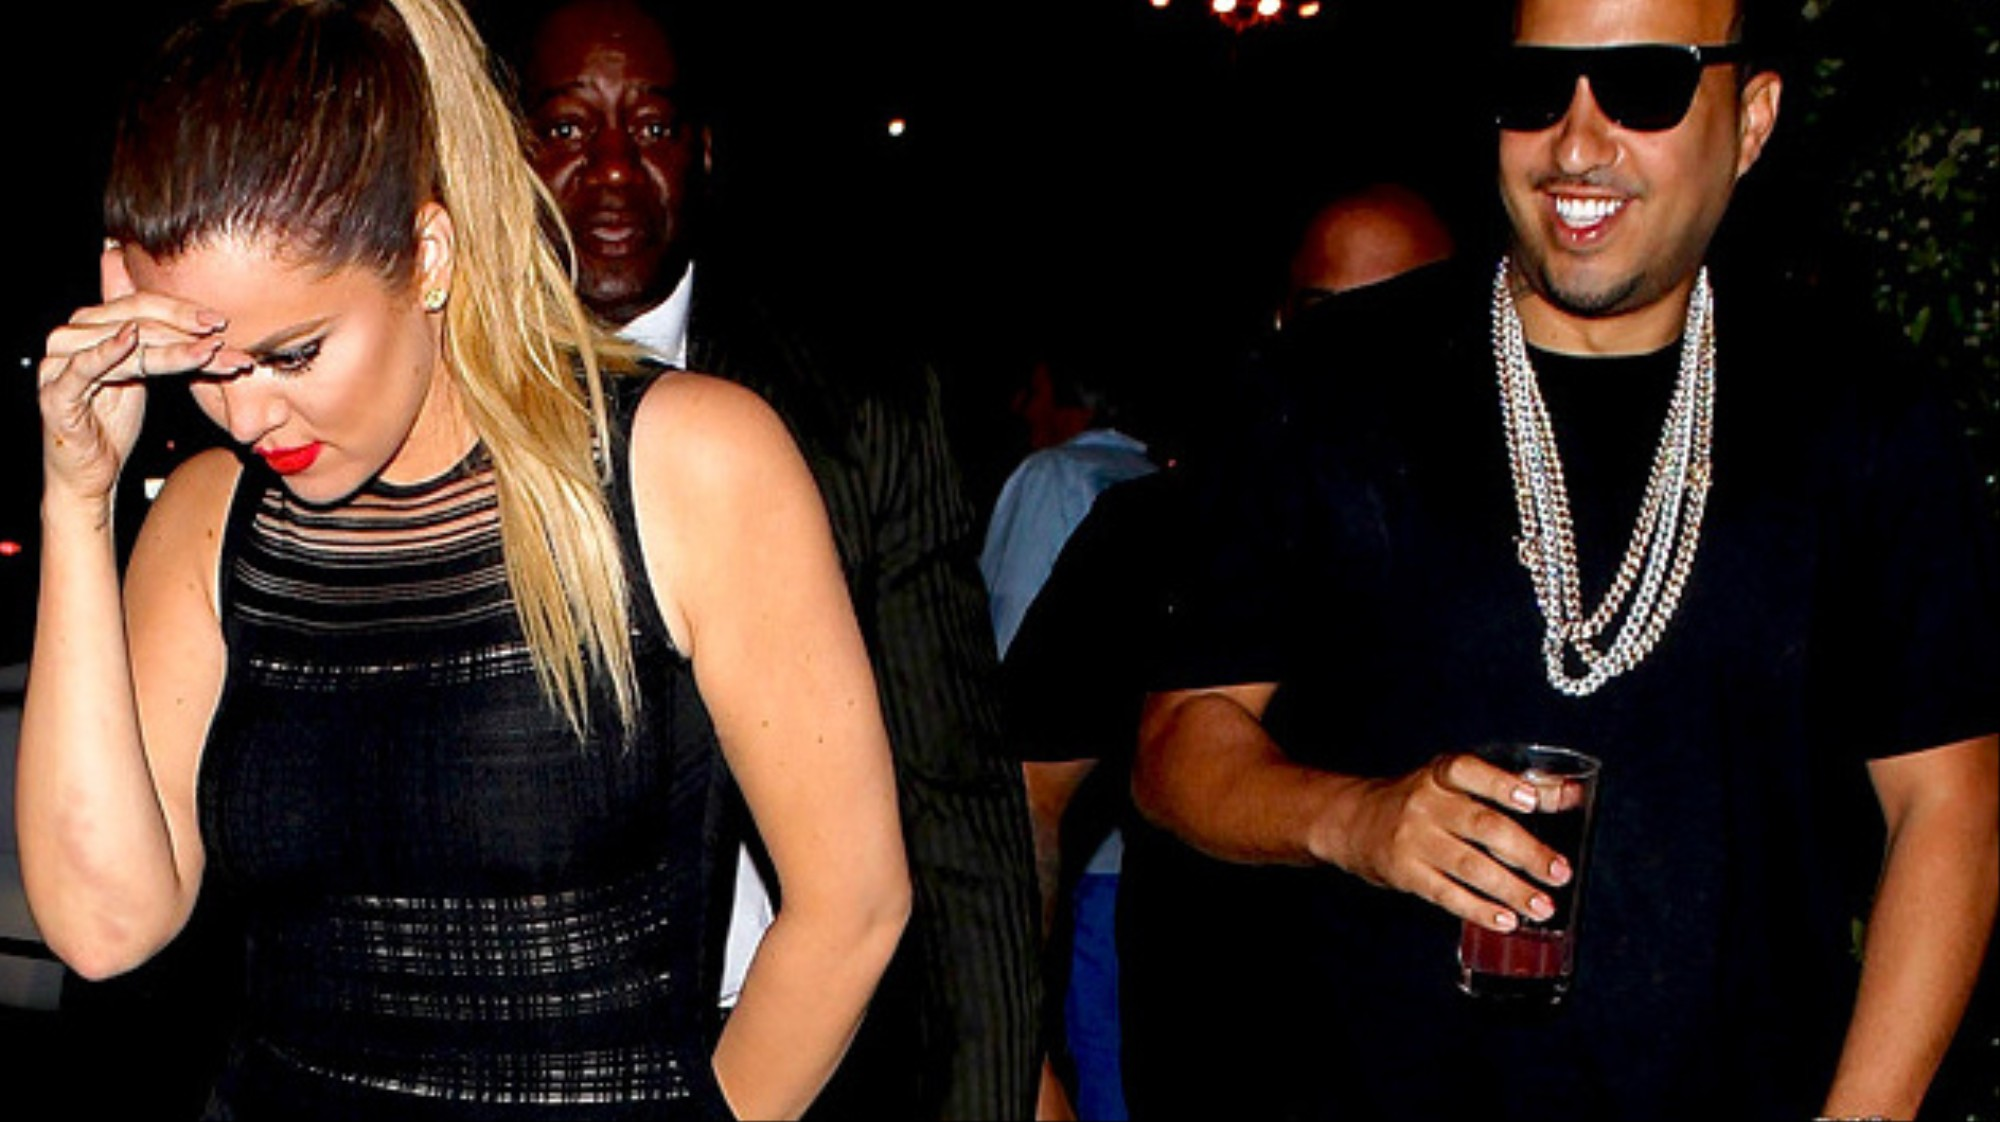 is french montana dating khloe